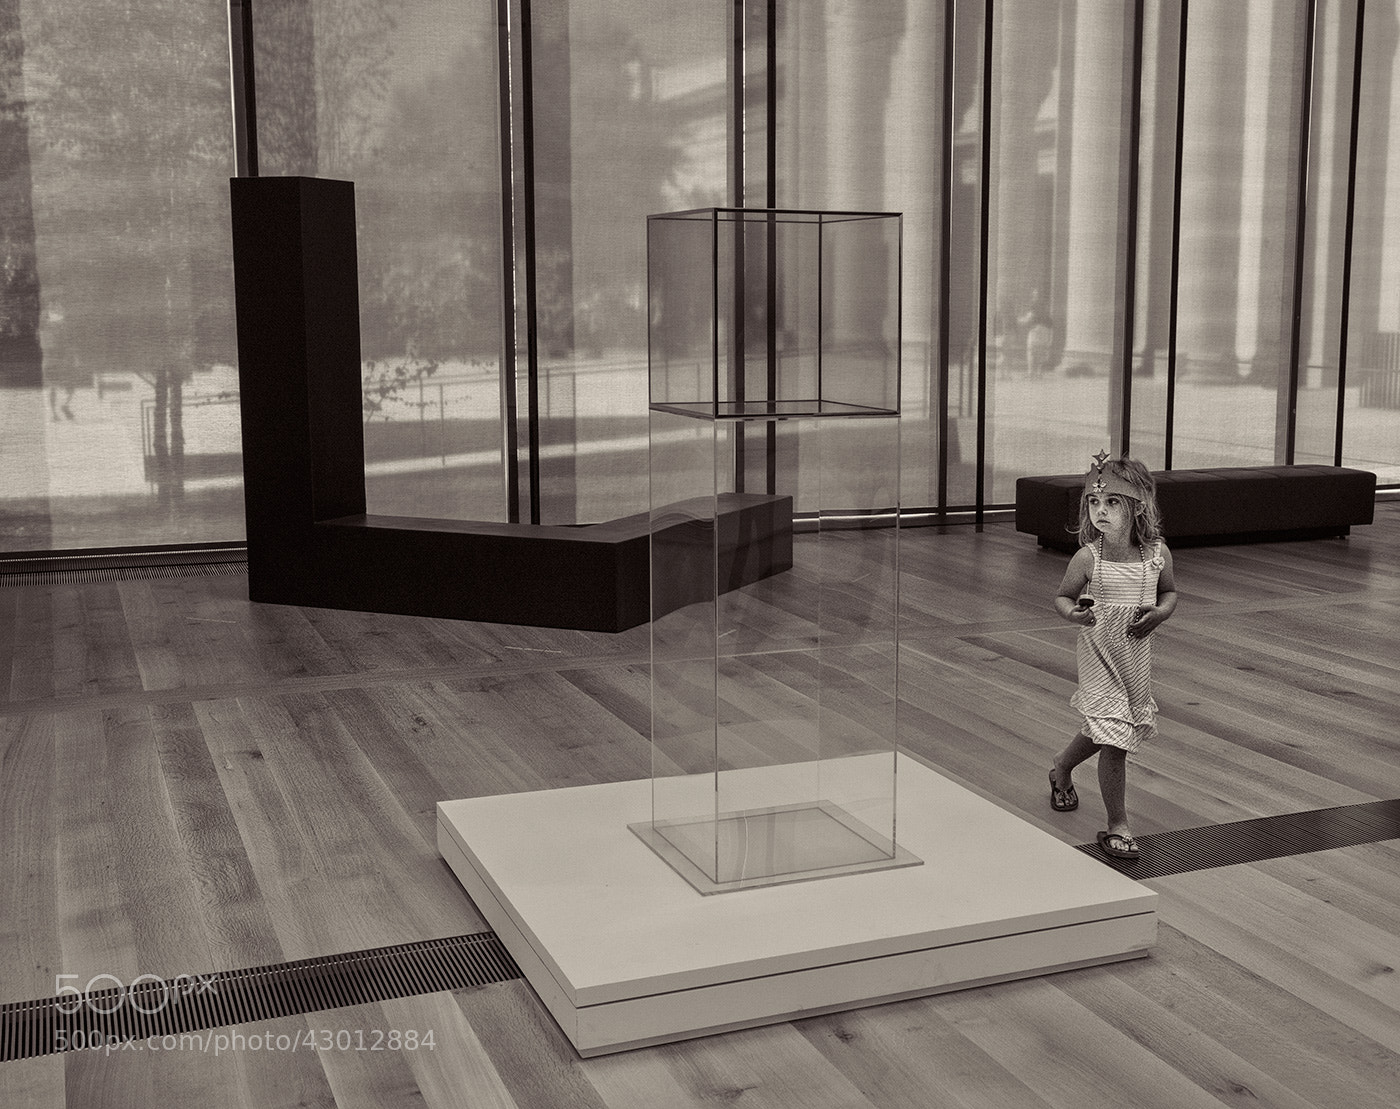 Photograph Child at Museum by Michael Richards on 500px